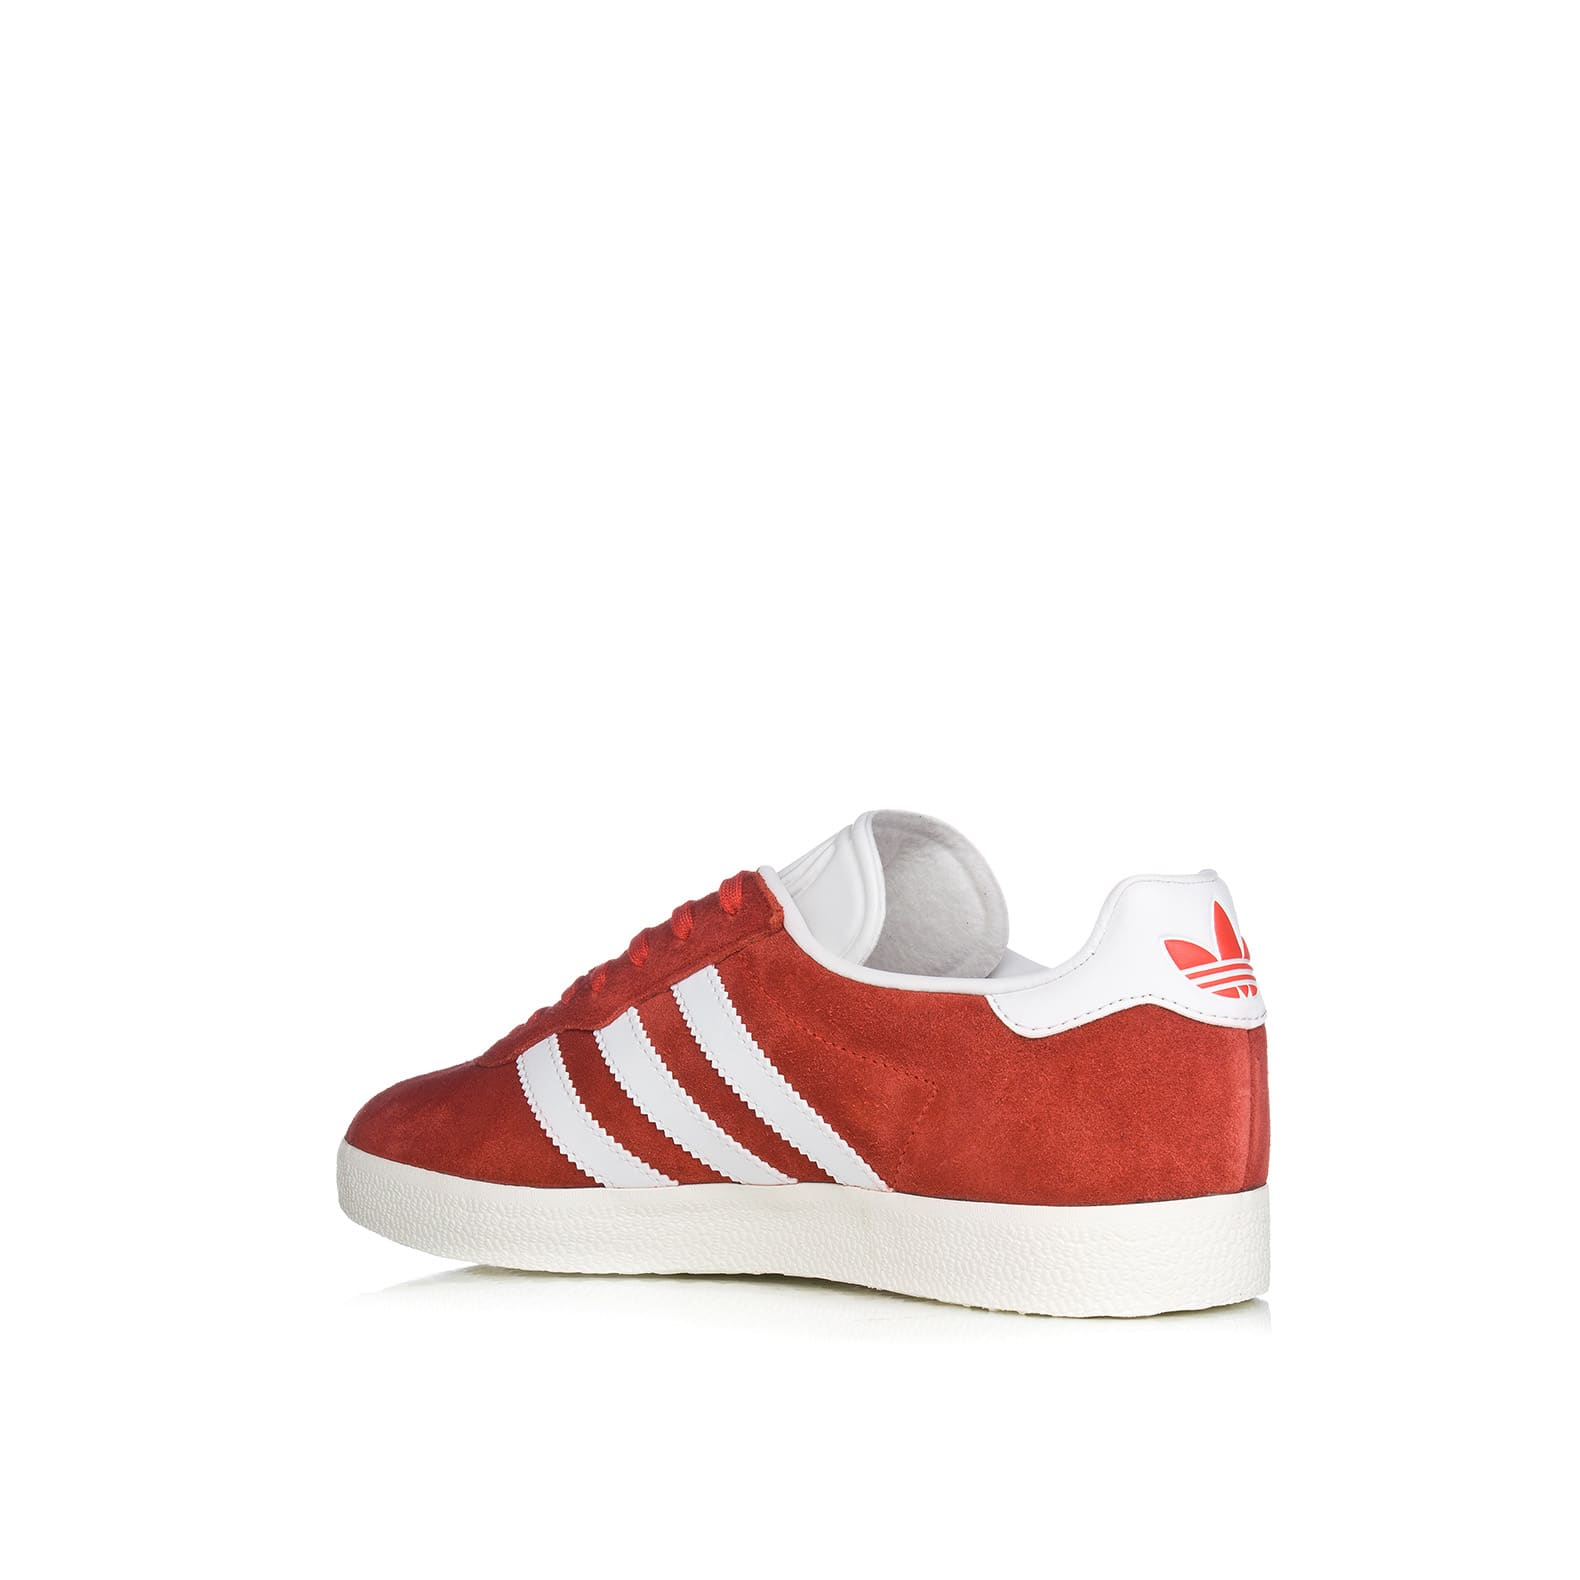 adidas-originals-gazelle-super-bb5242